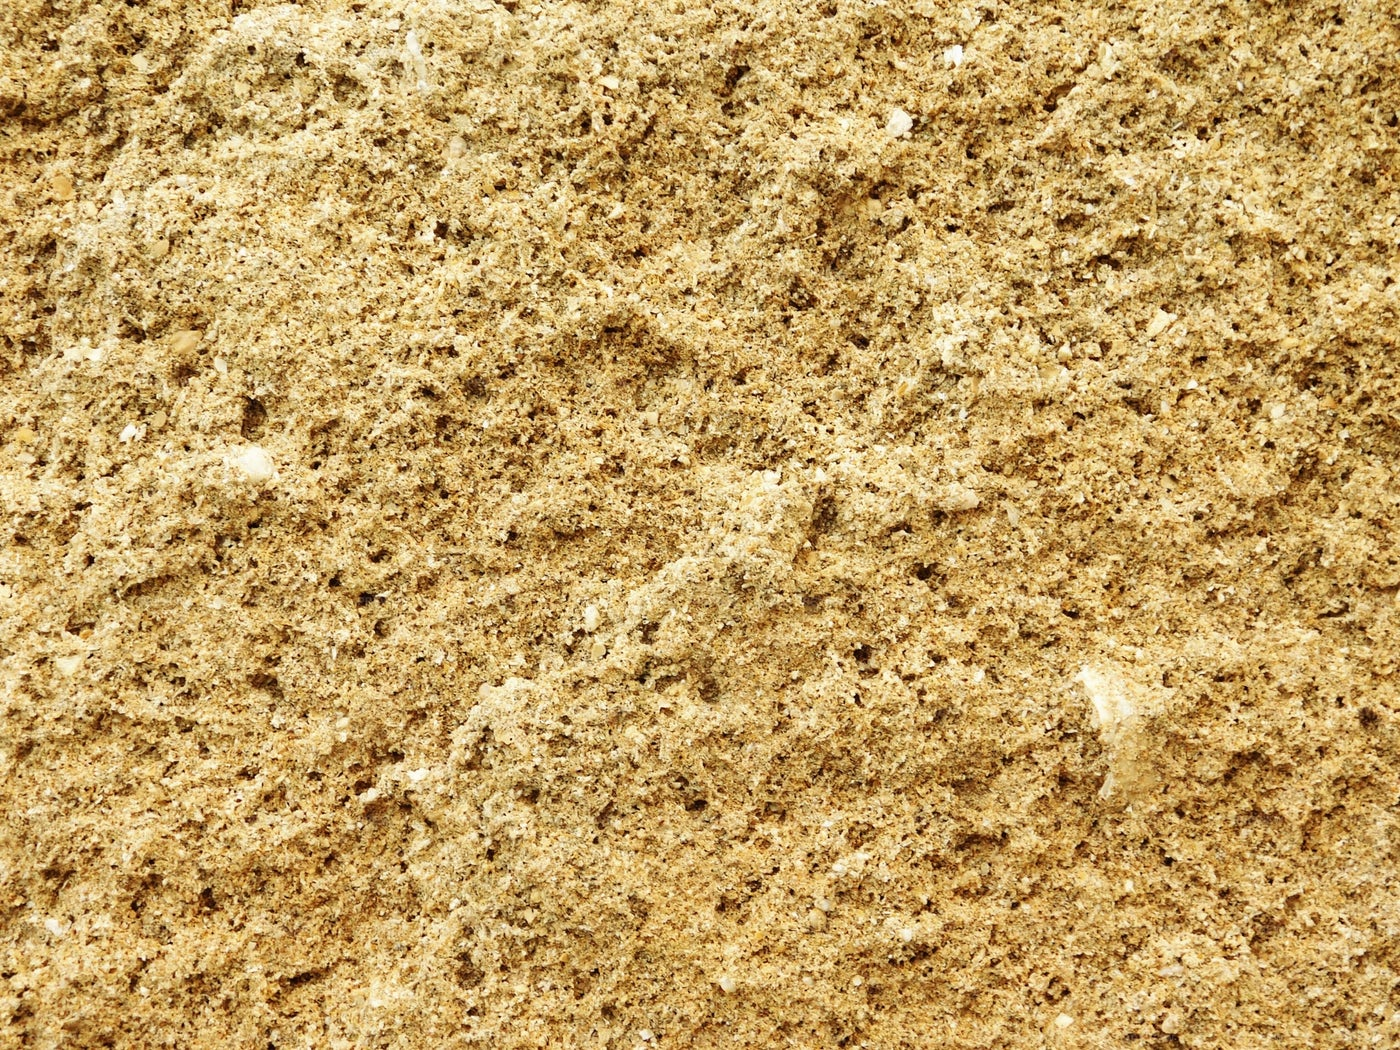 Brown And Yellow Stone Texture: Stock Photos